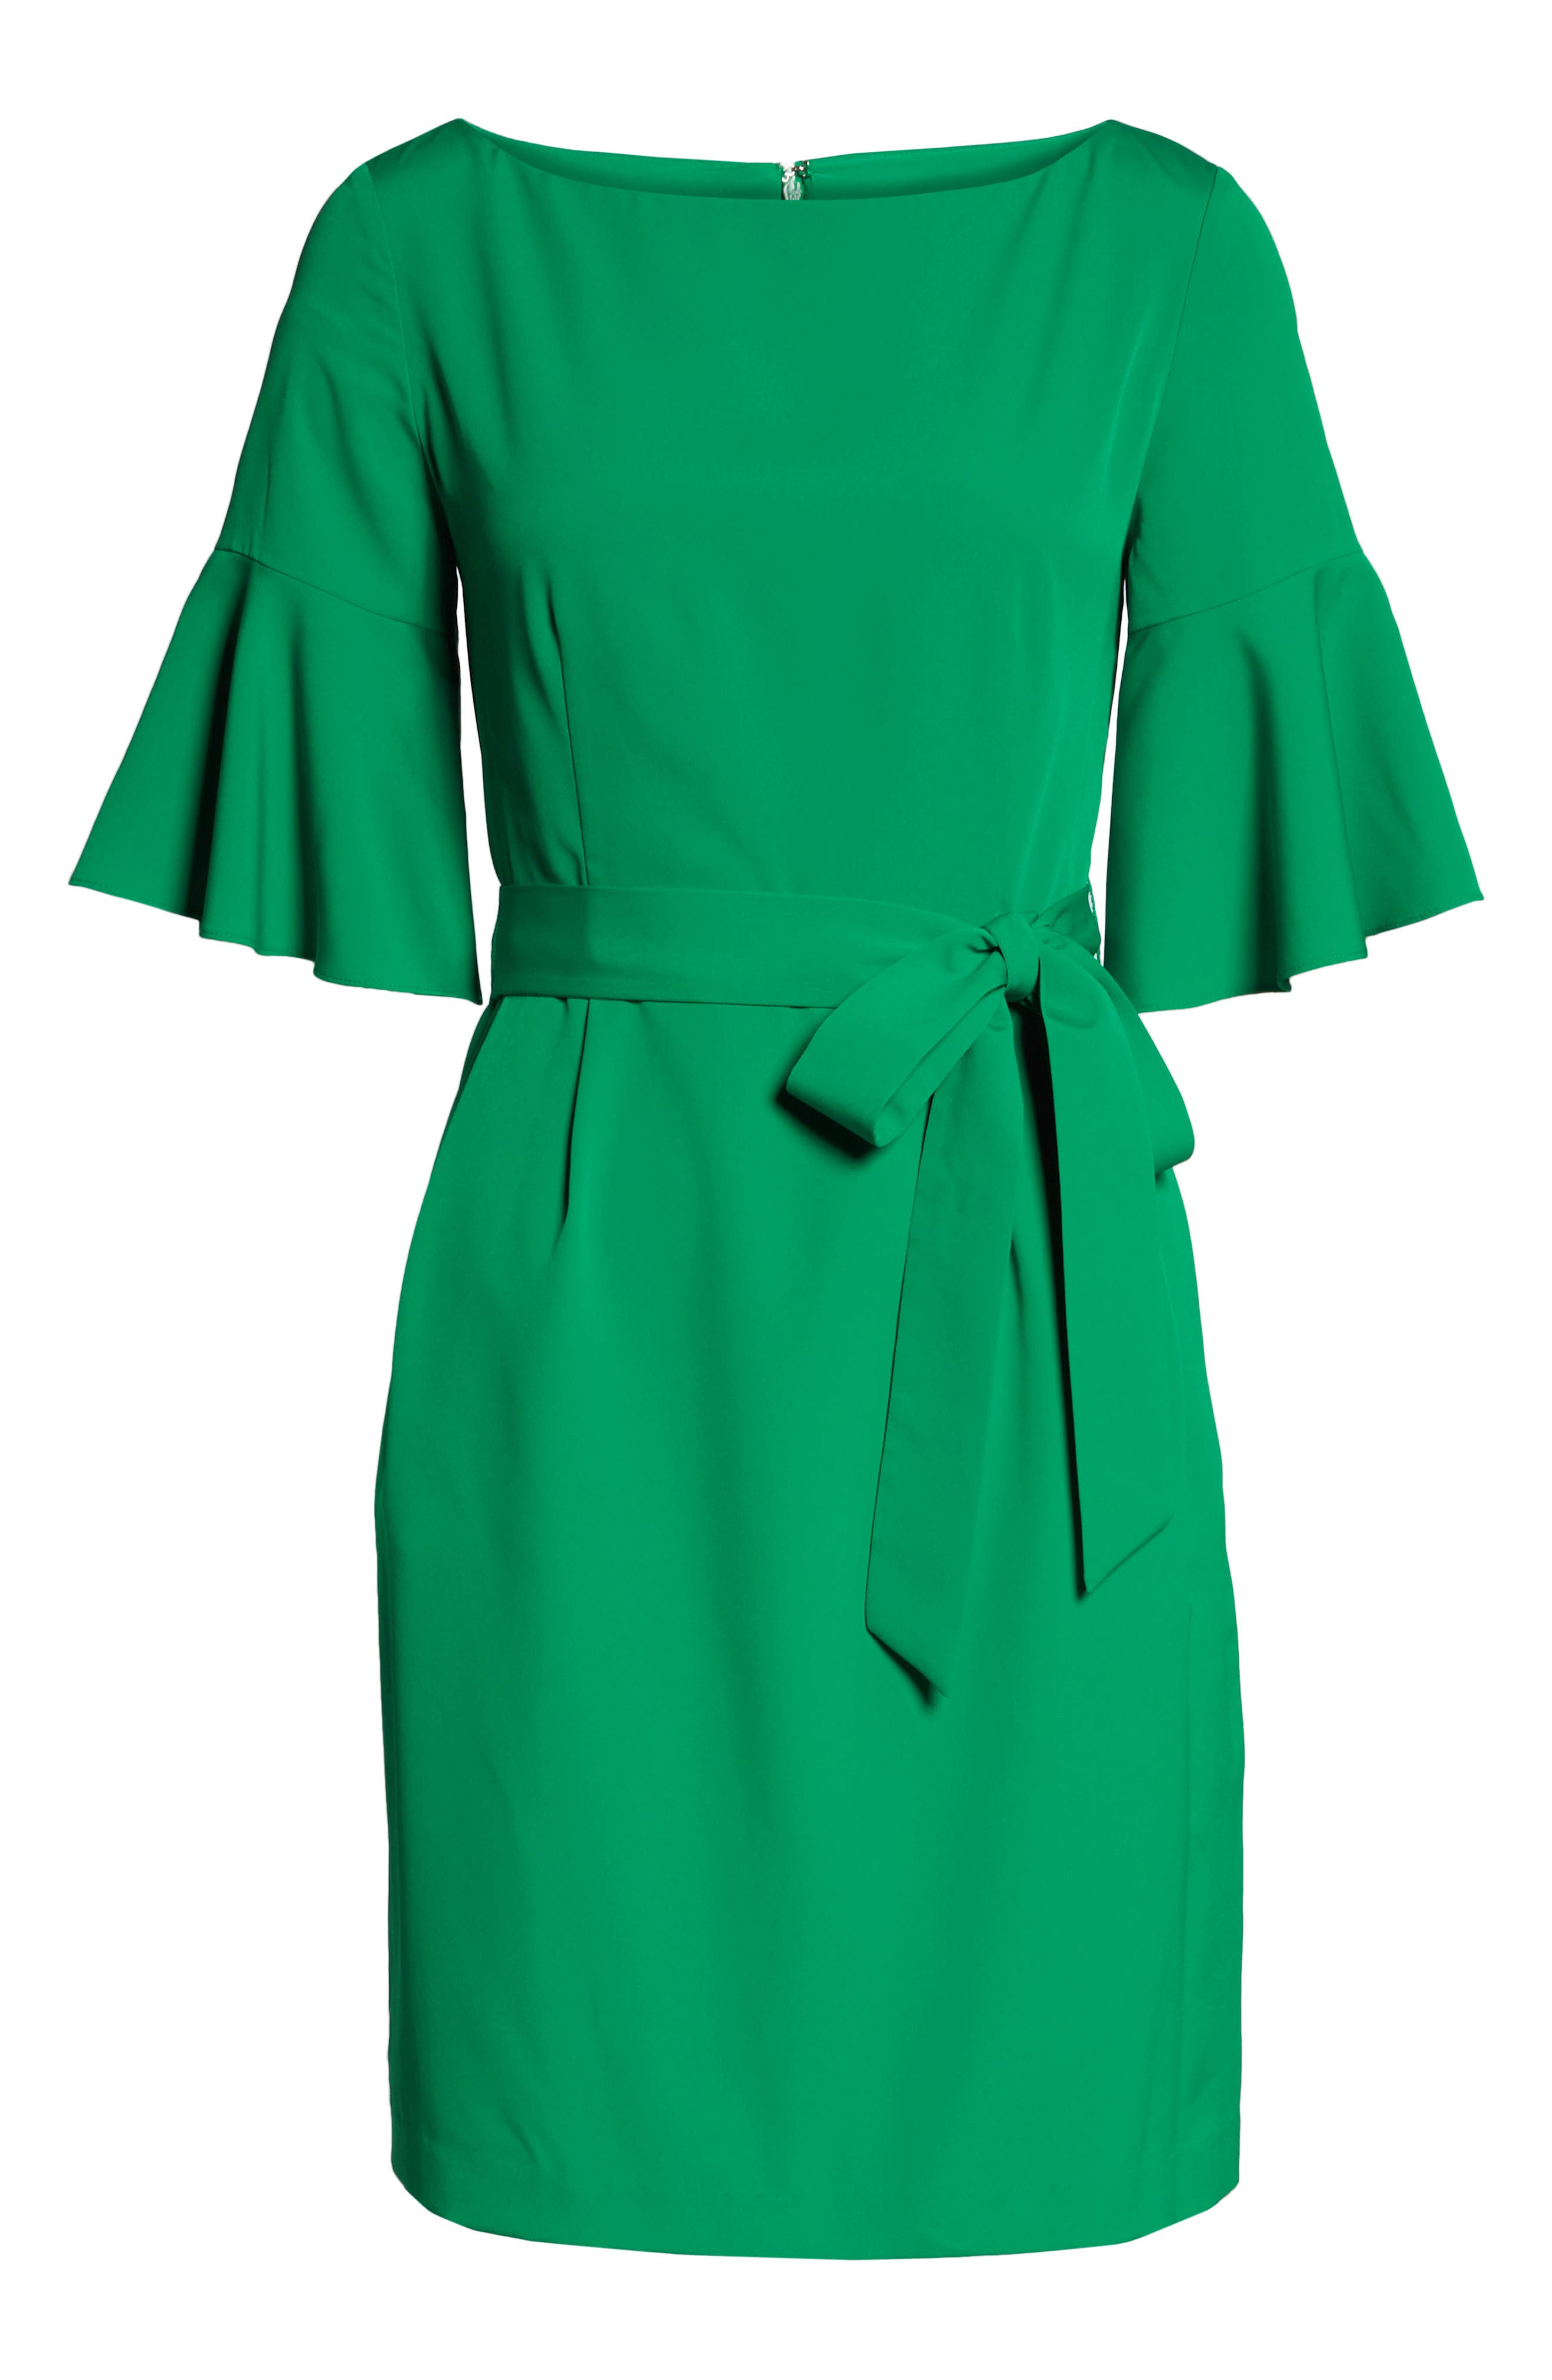 ELIZA J, Bell Sleeve Sheath Dress, Alternate thumbnail 8, color, GREEN